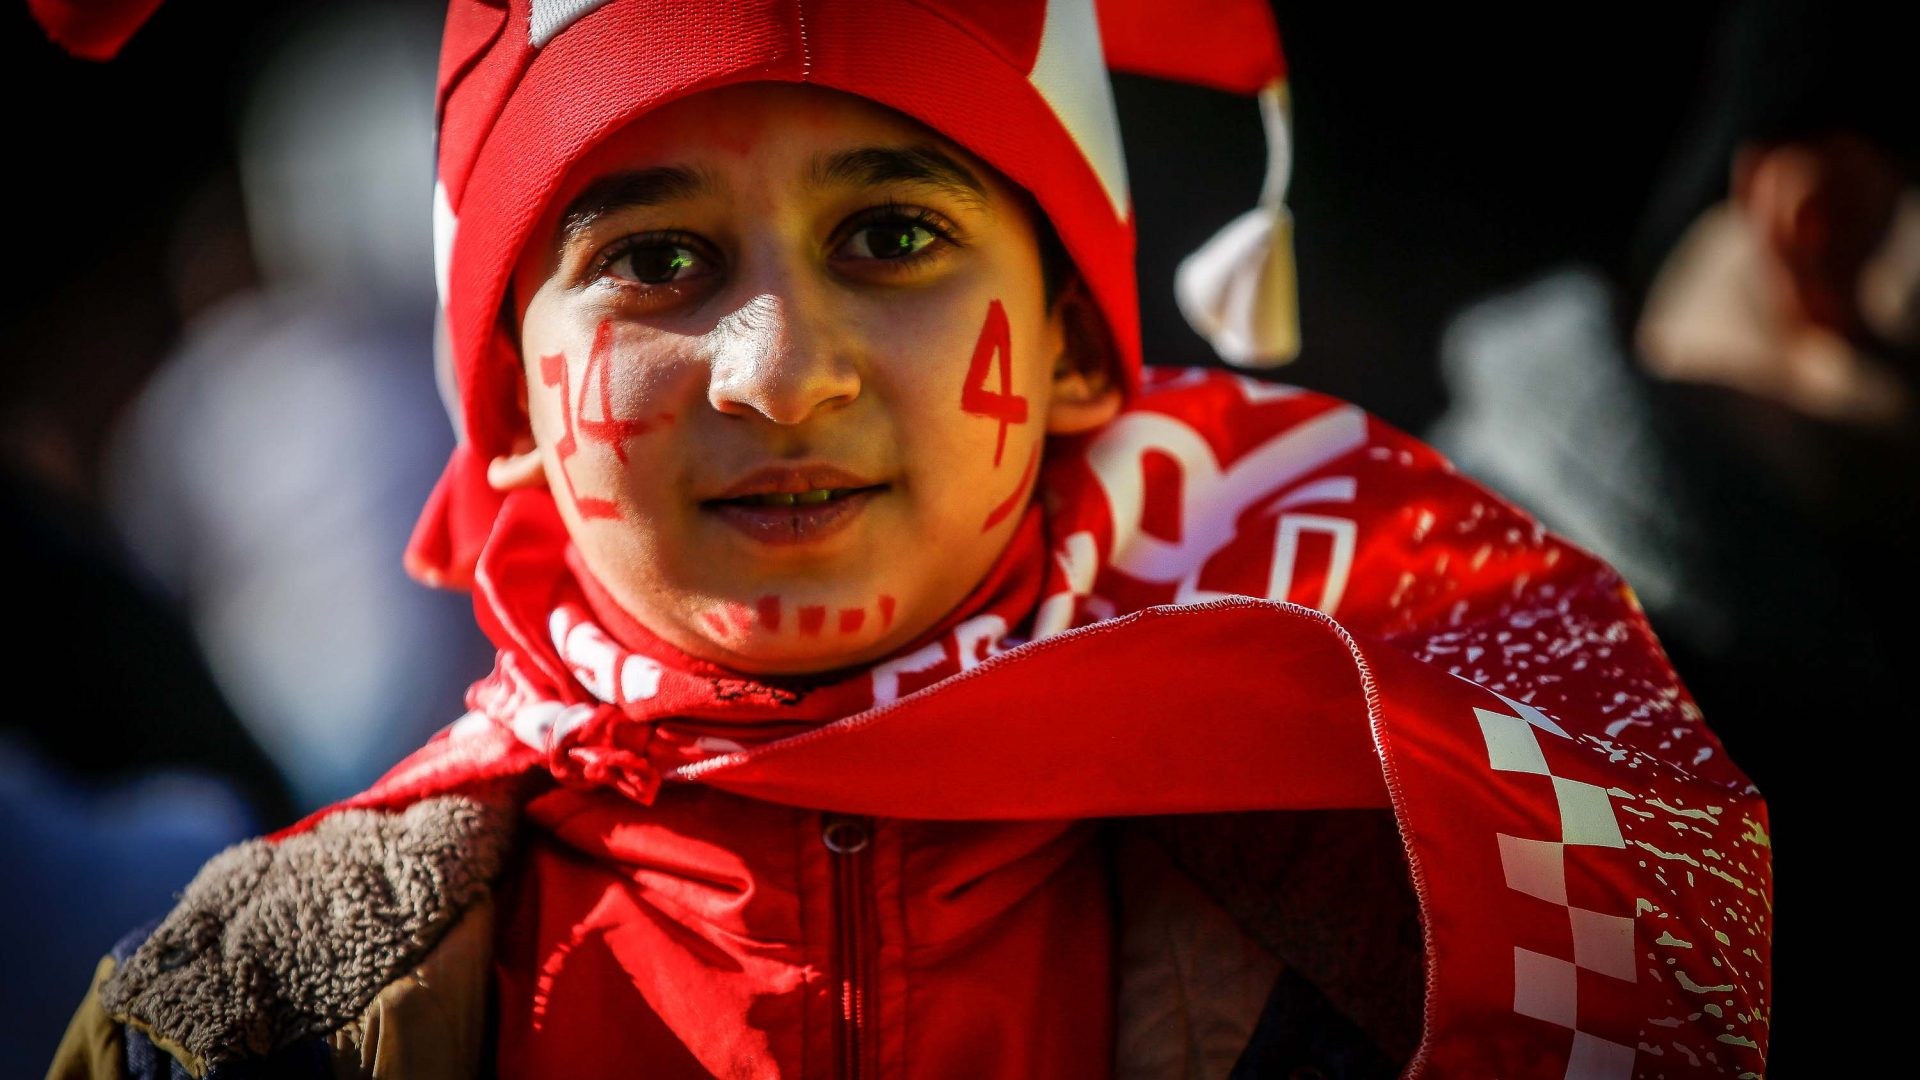 A Persepolis fan at the Tehran Derby.